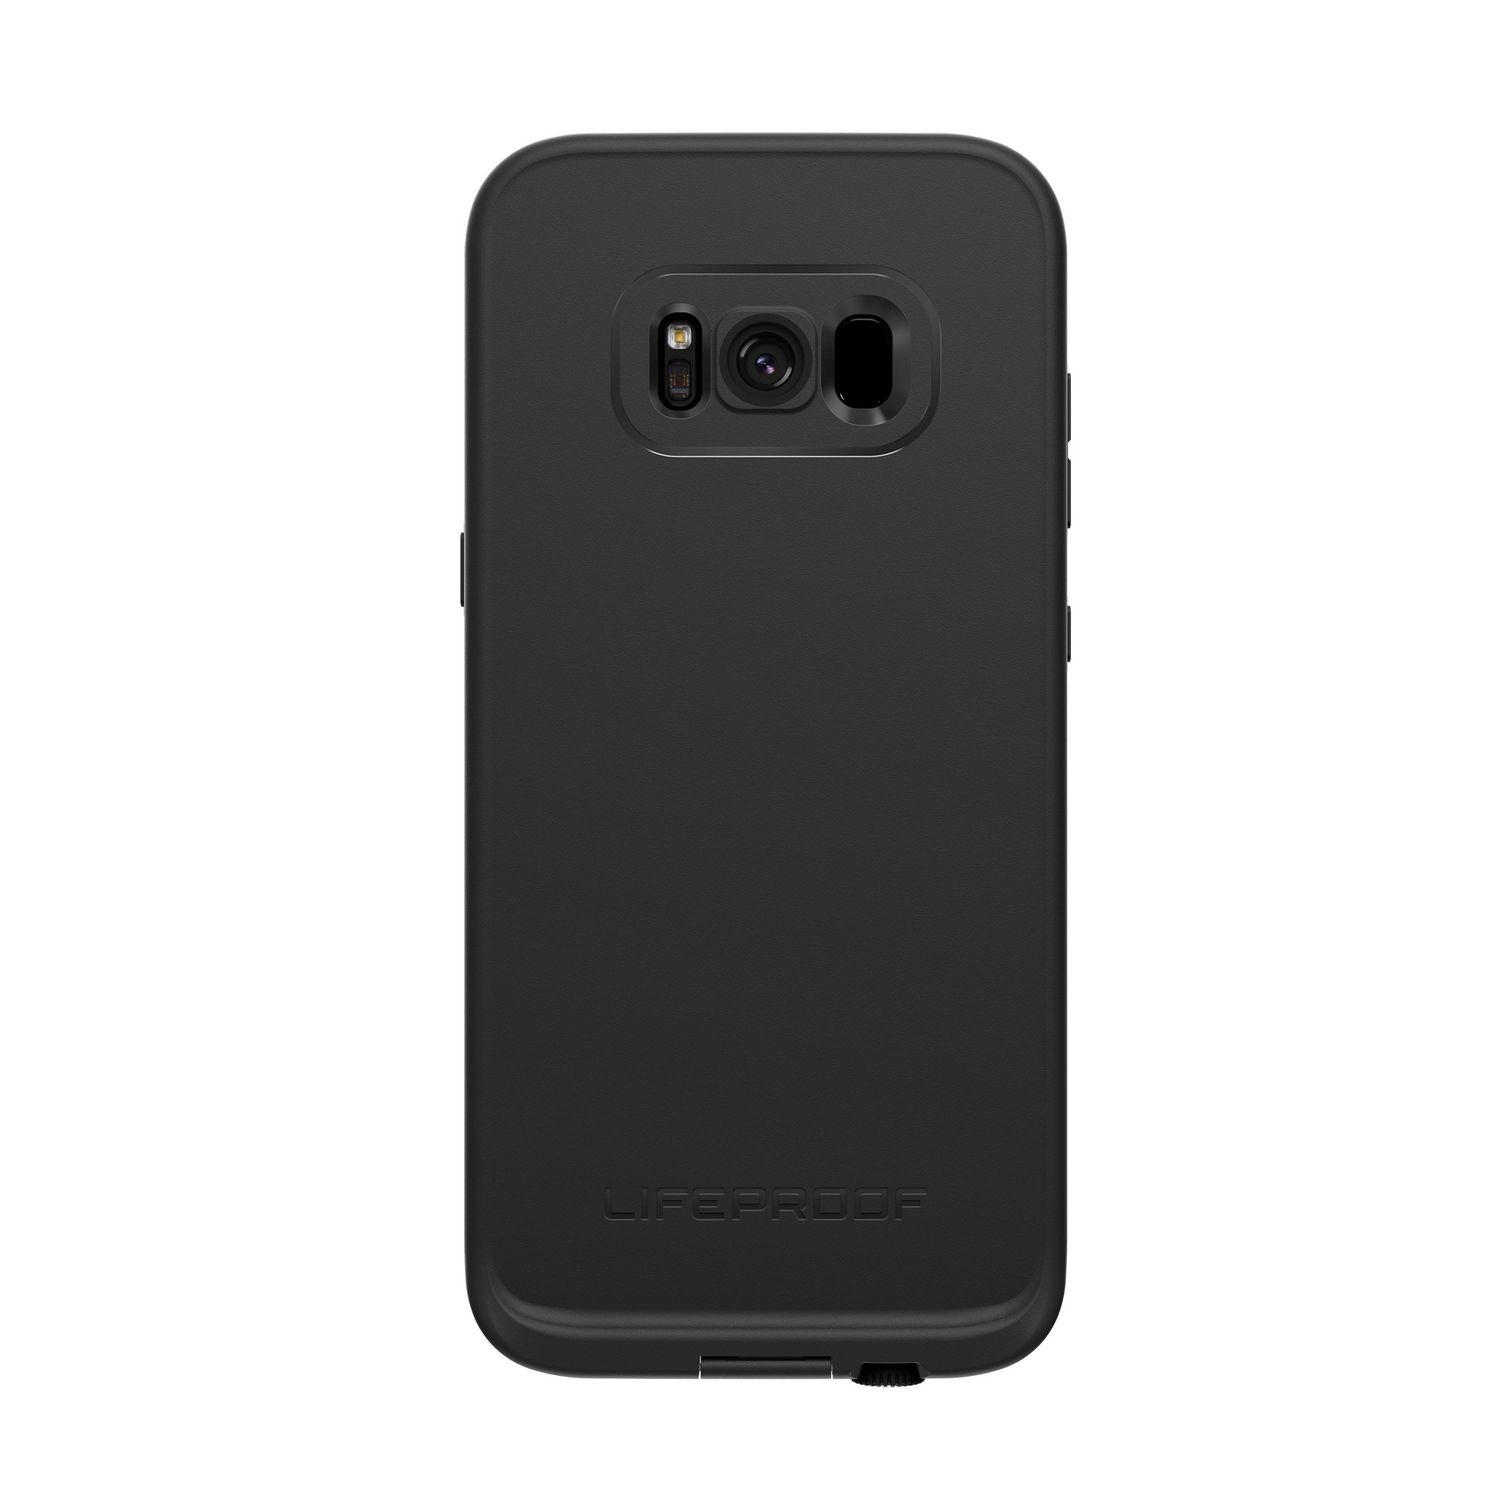 new styles 4c1b2 05359 LifeProof Fre Case for Galaxy S8+